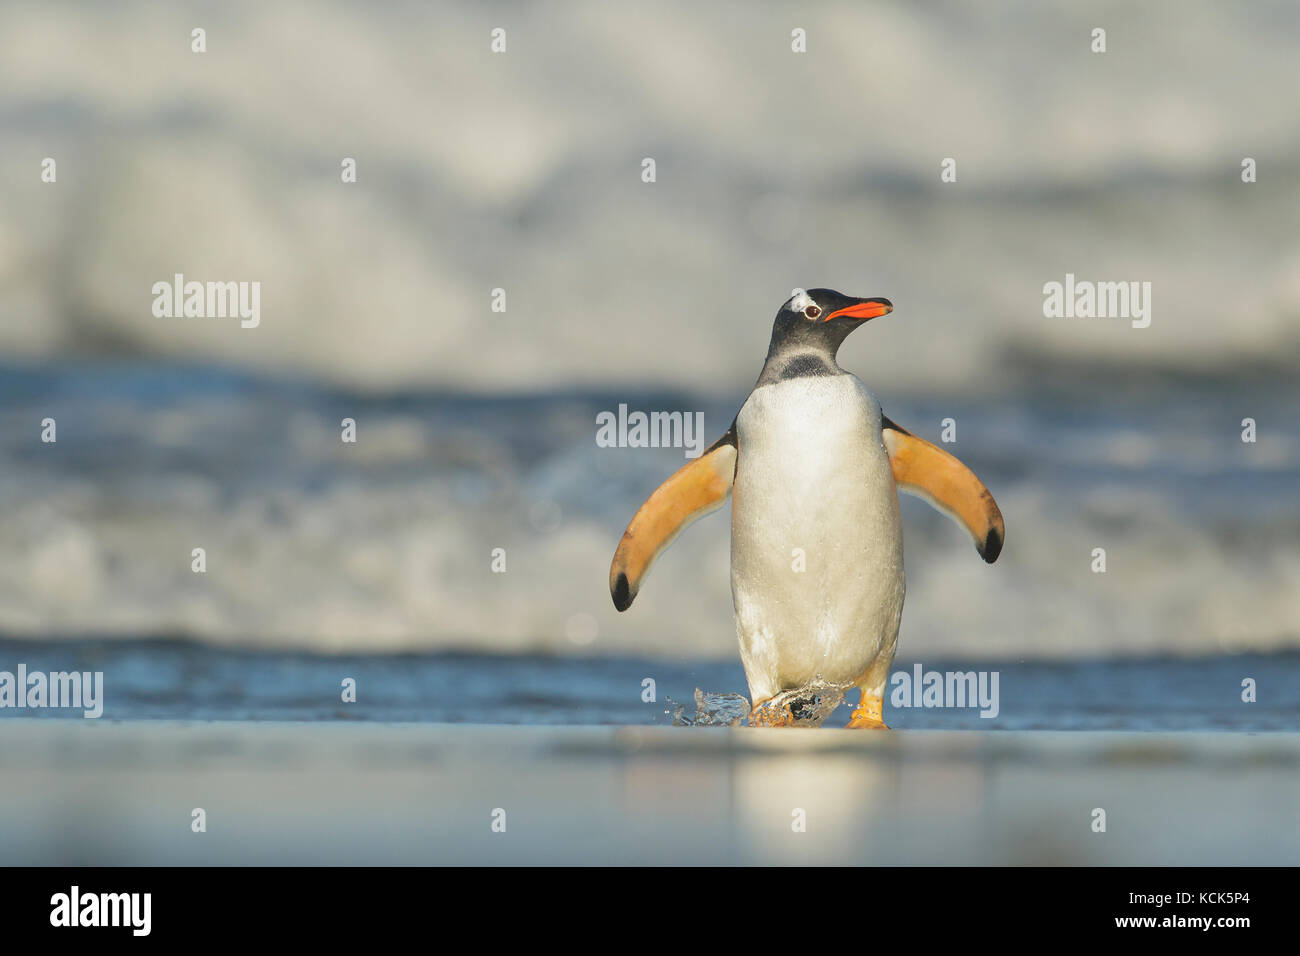 Gentoo Penguin (Pygoscelis papua) emerging from the ocean in the Falkland Islands. - Stock Image